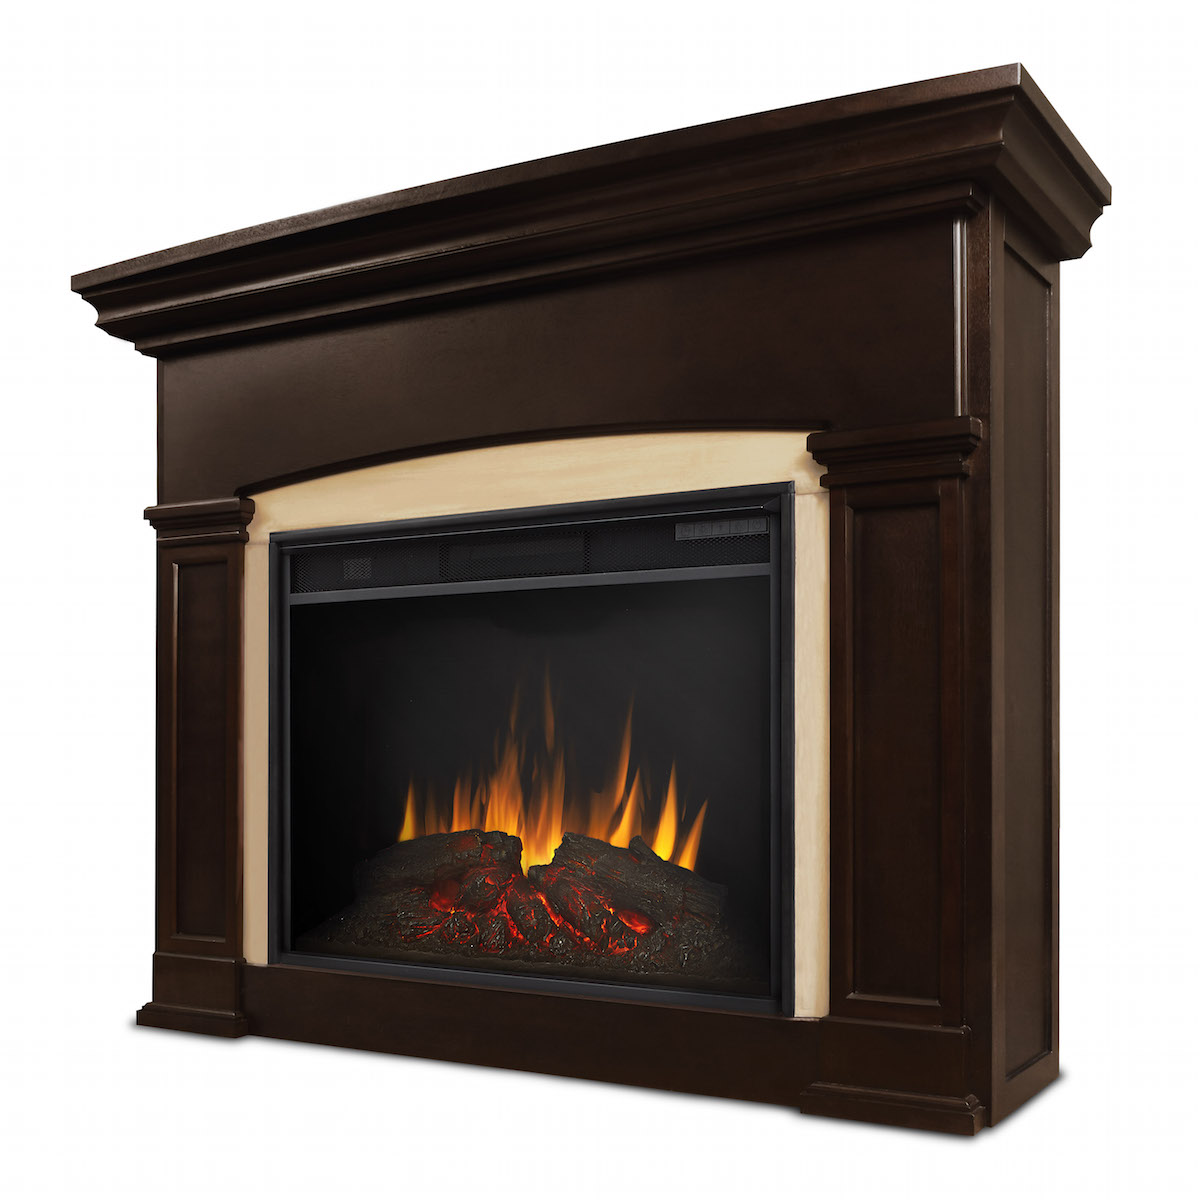 Real flame holbrook grand electric fireplace in dark walnut for Direct flame